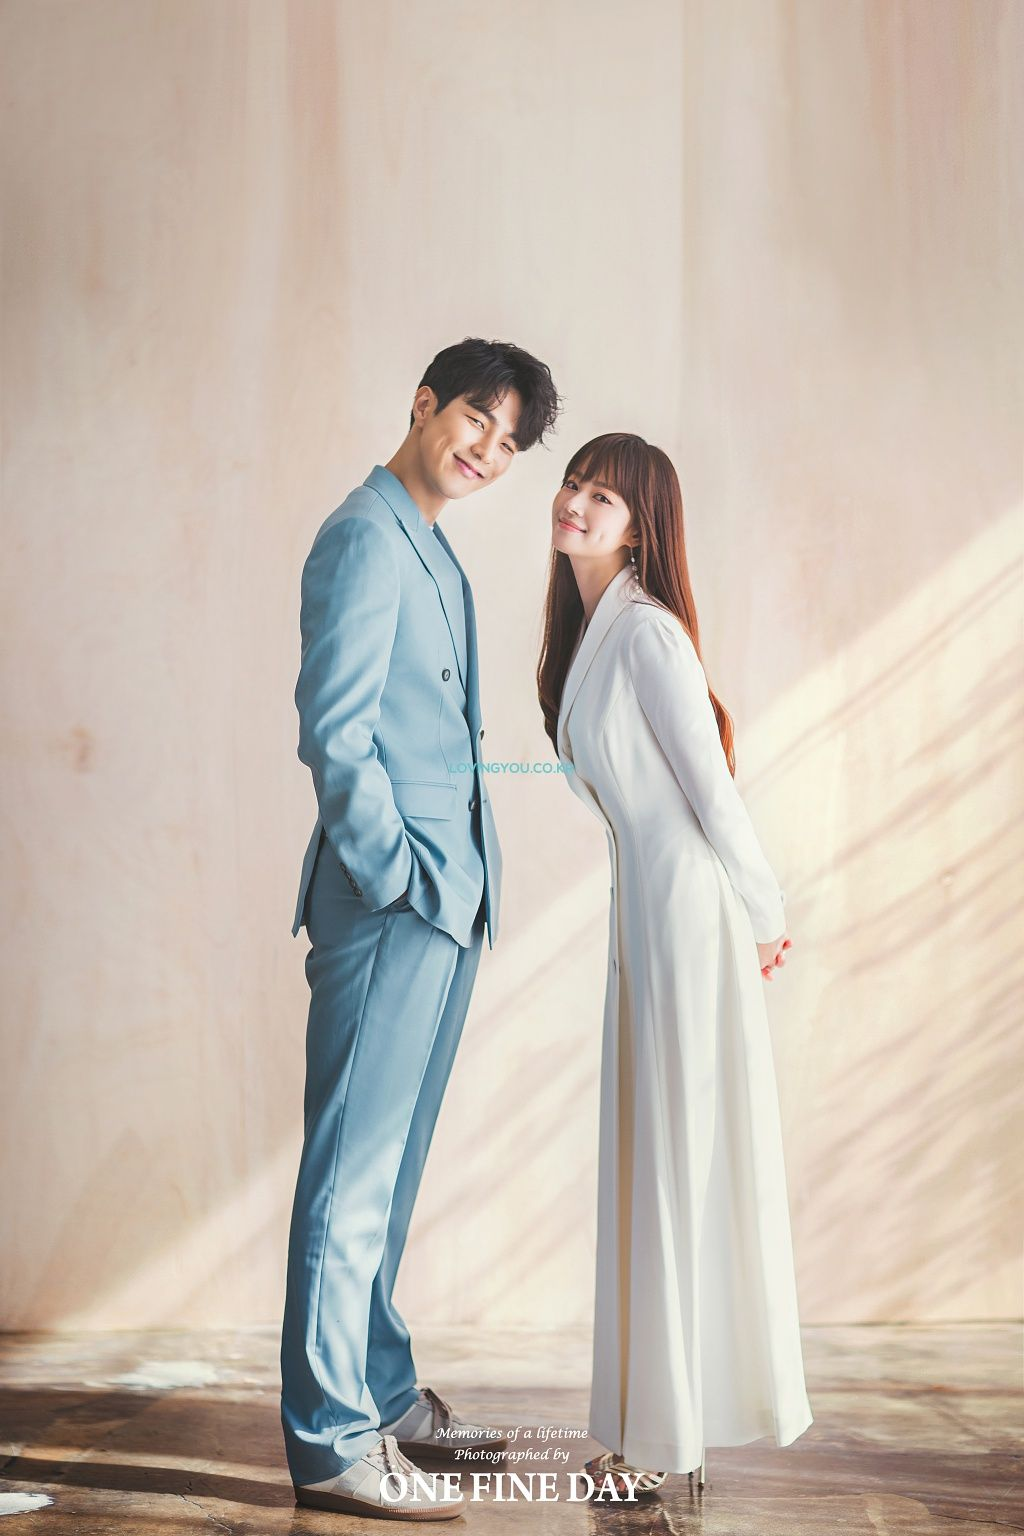 ONE FINE DAY [ONE FINE DAY] - KOREA PRE WEDDING PHOTOSHOOT by LOVINGYOU